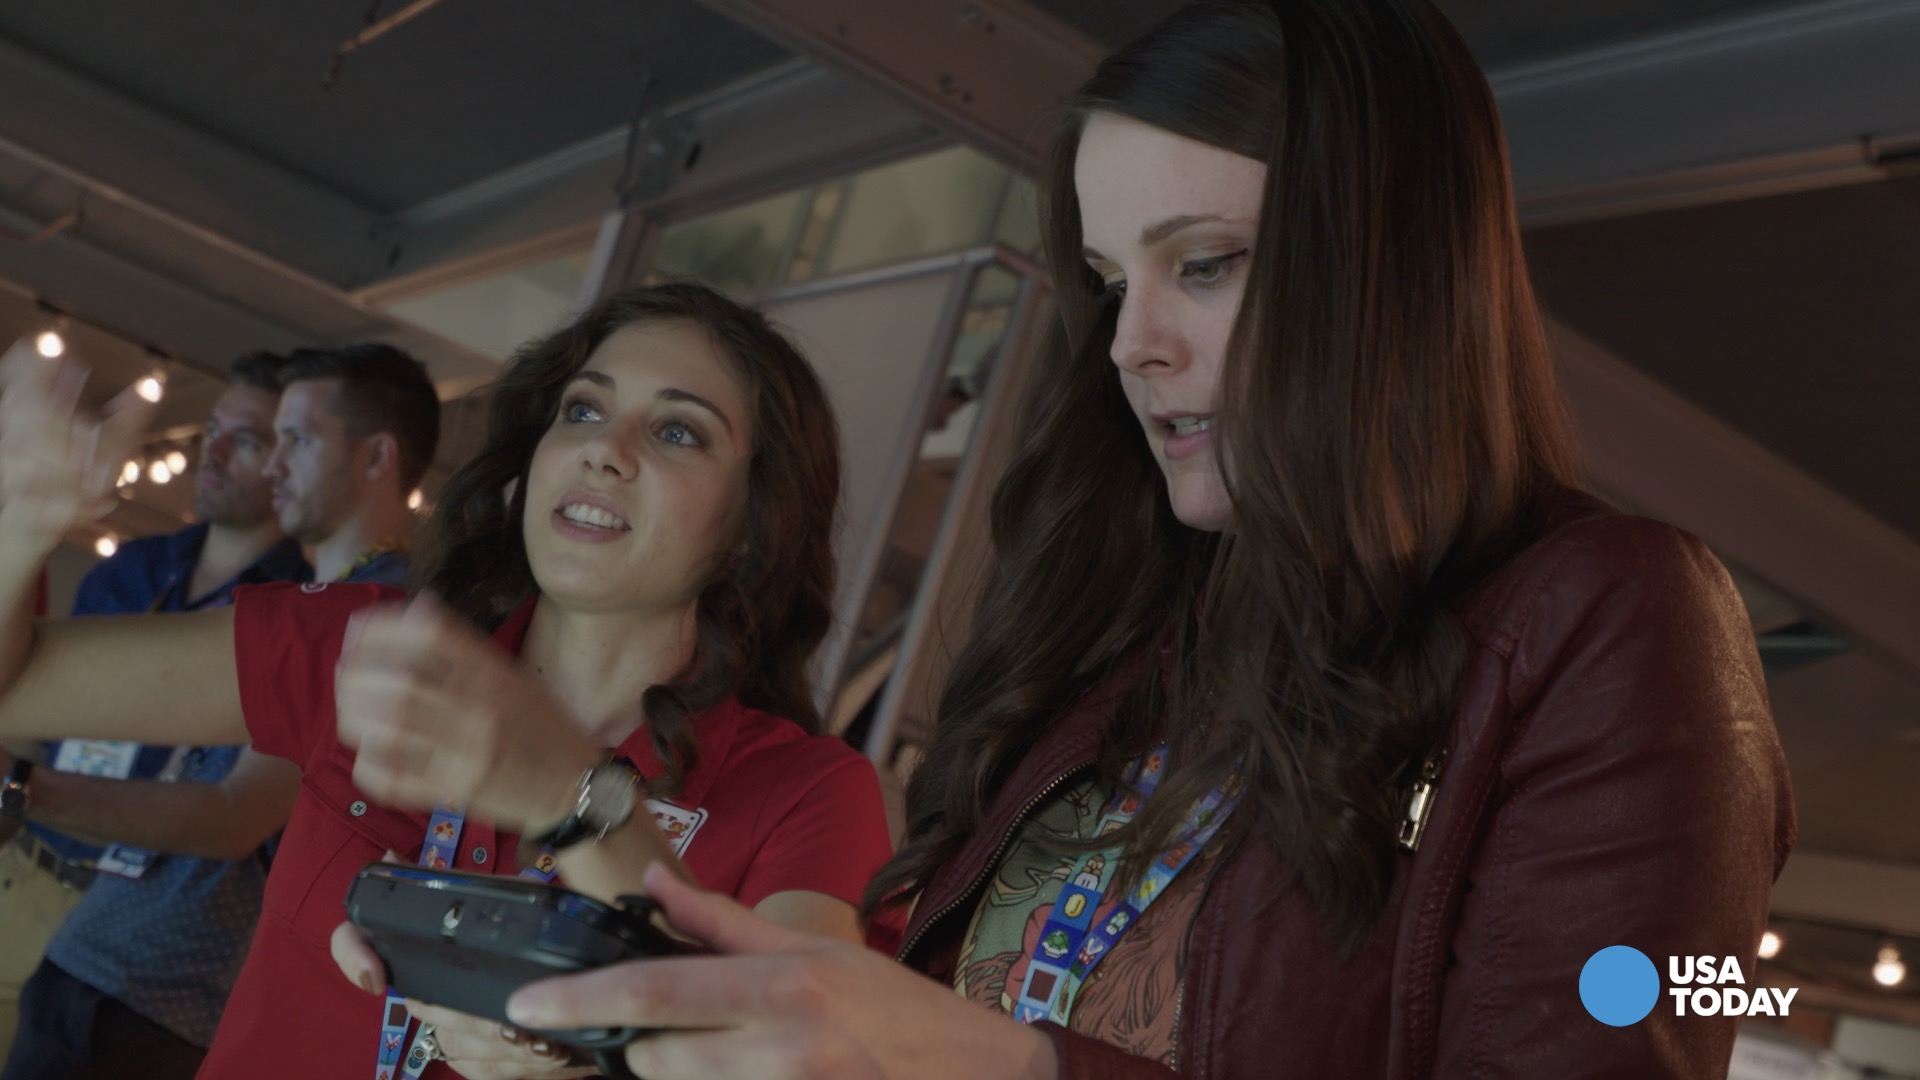 E3 2015: Women take on stronger roles in video games